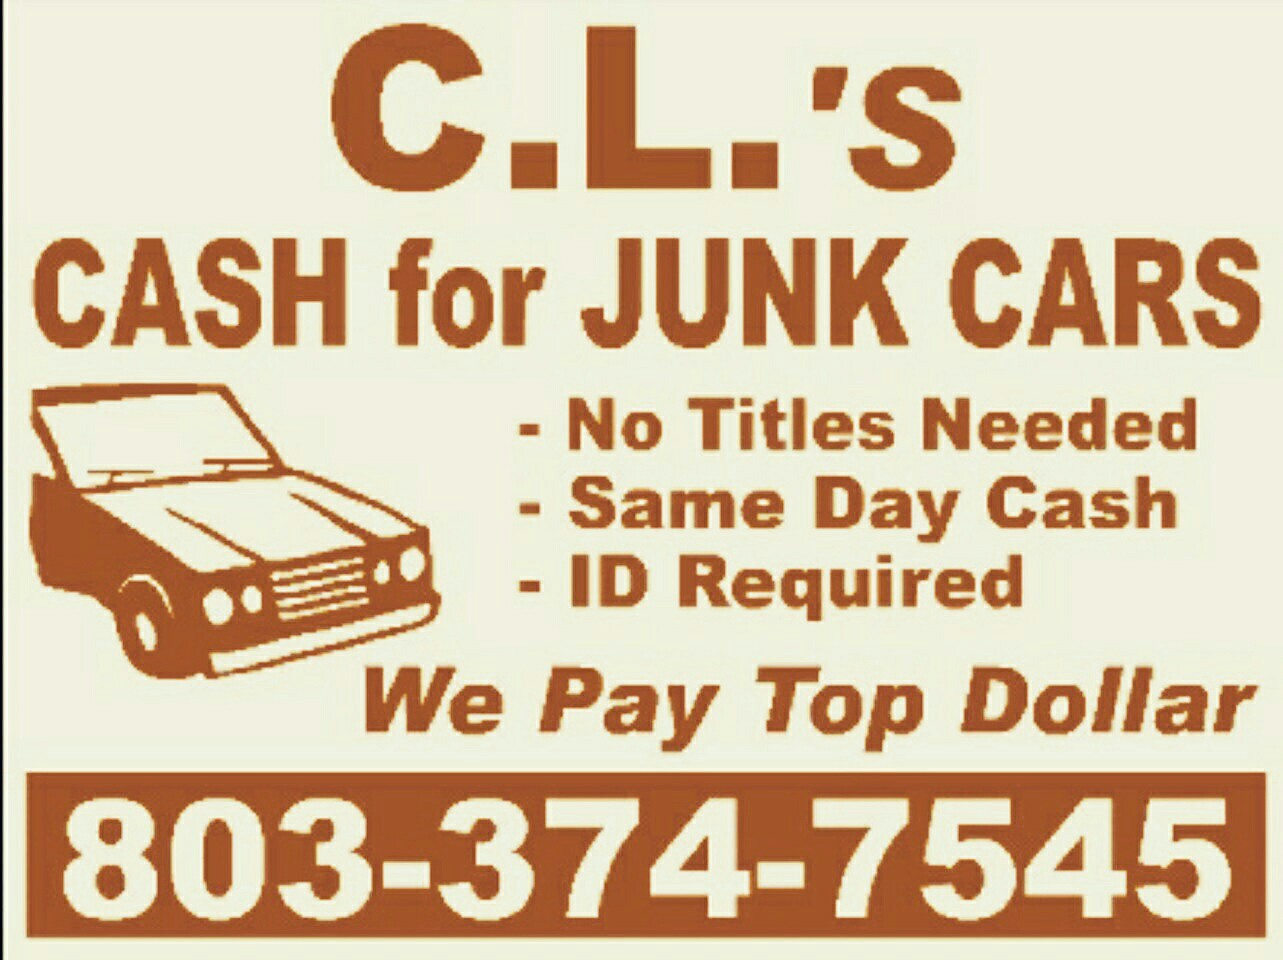 CL\'s Cash for Junk Cars Chester, SC 29706 - CLOSED - YP.com